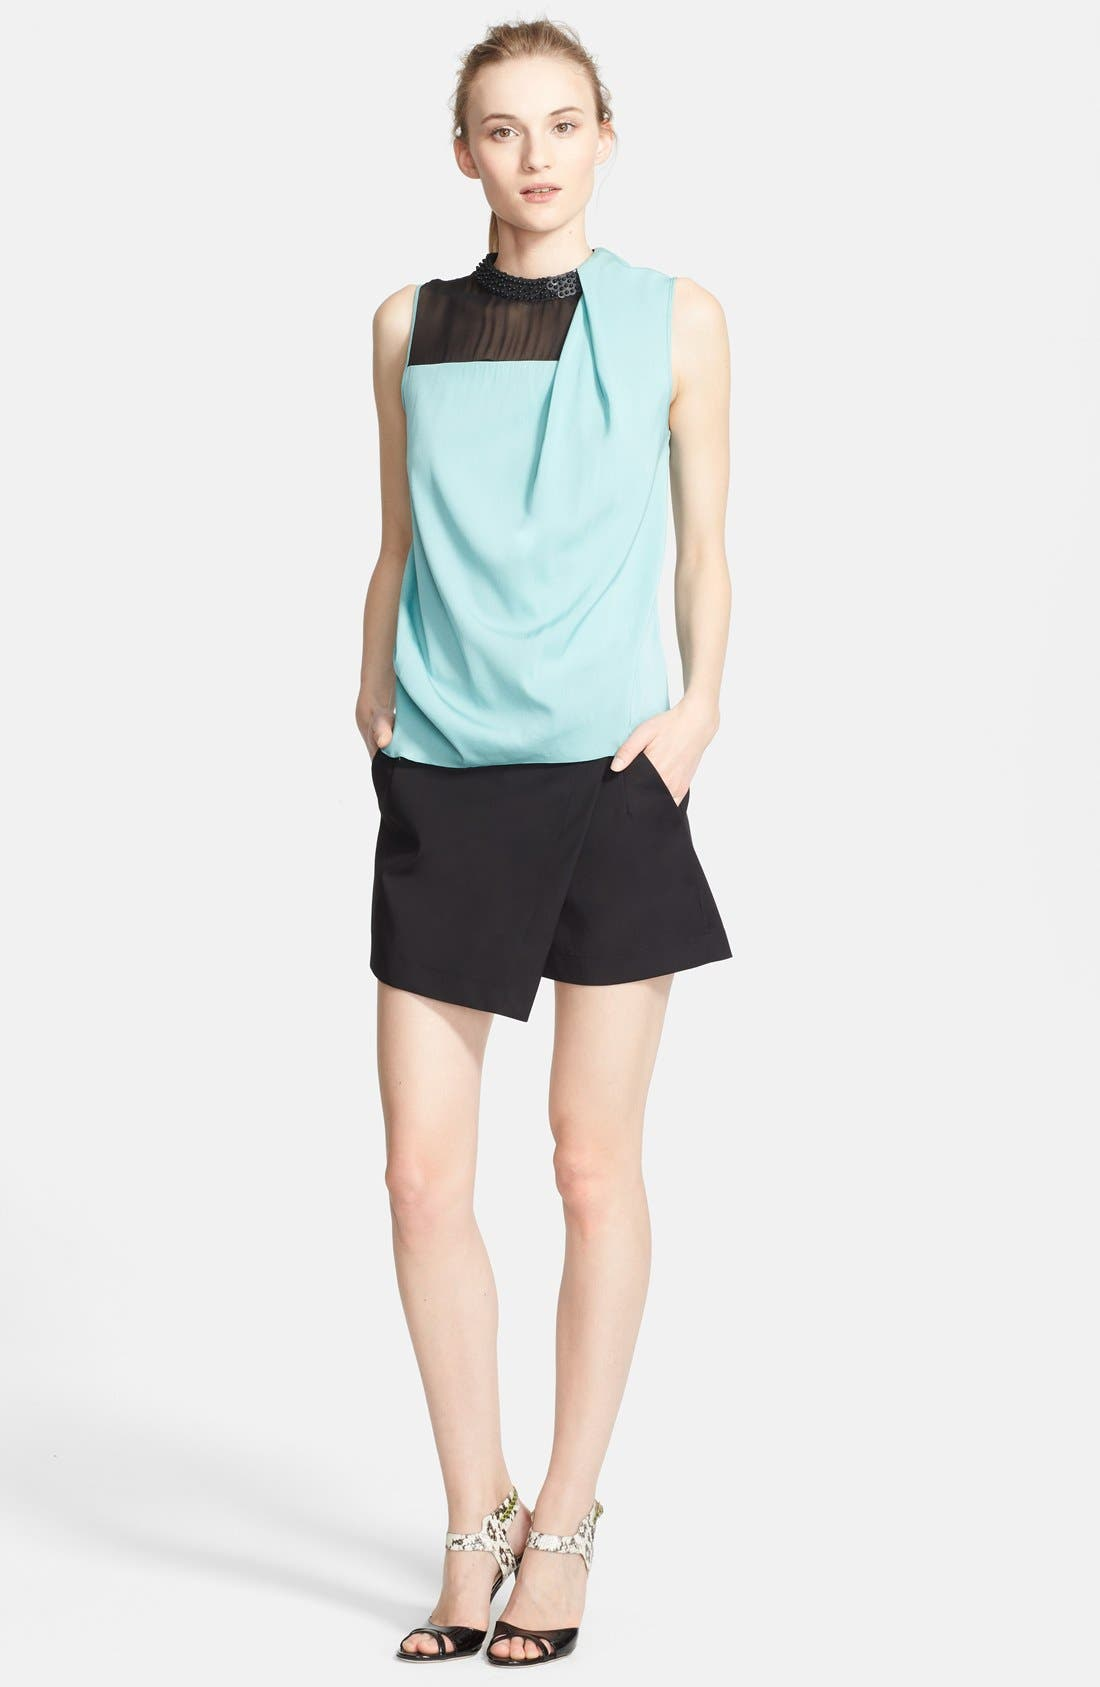 Main Image - Robert Rodriguez Silk Top & Techno Skort